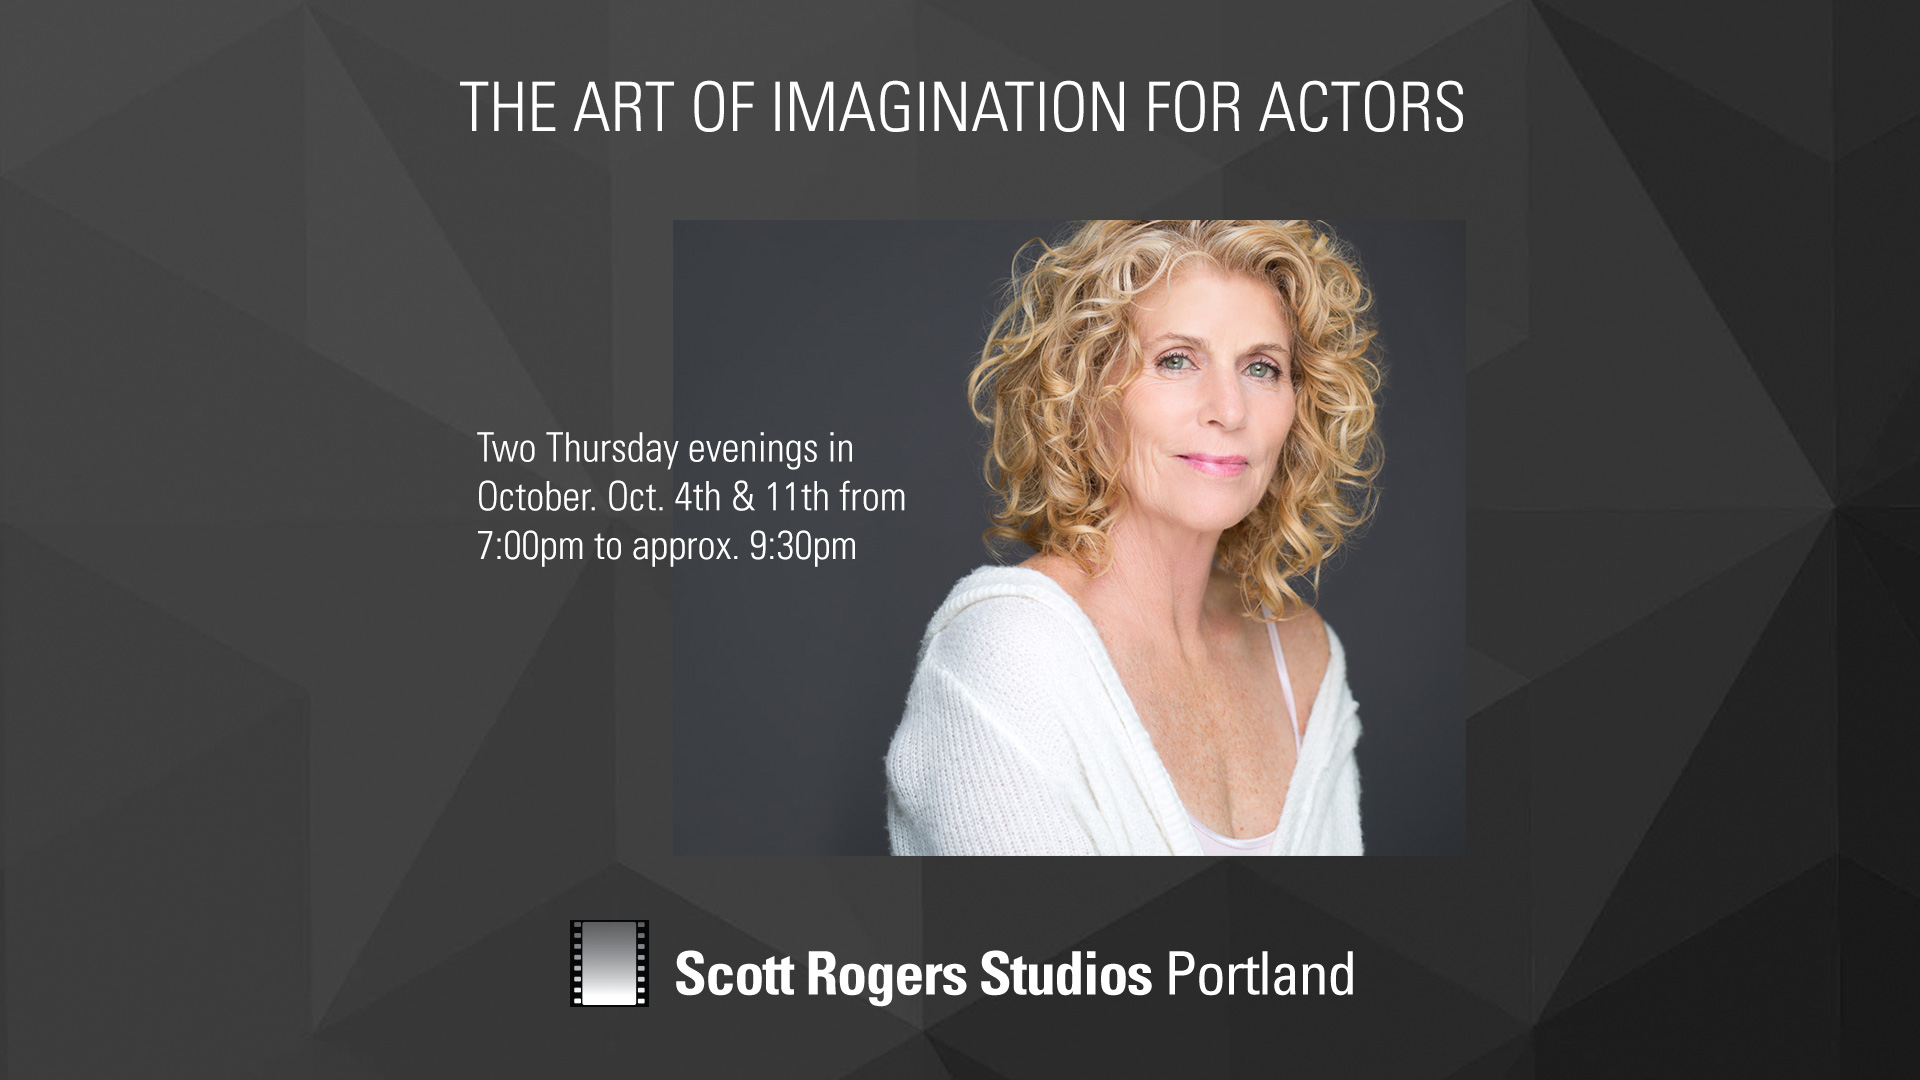 The Art of Imagination for Actors